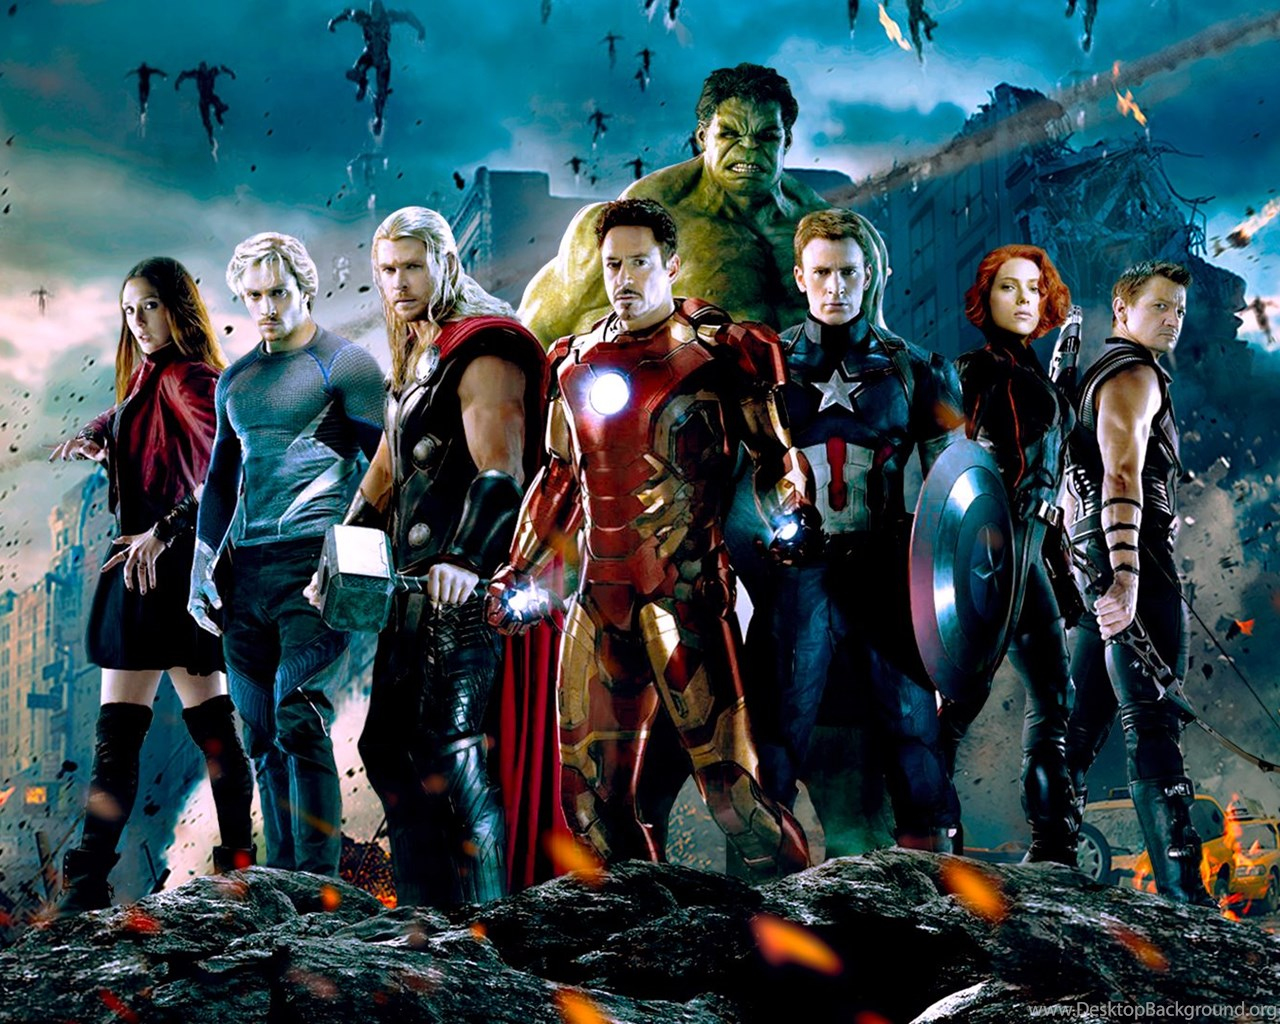 Avengers Age Of Ultron Wallpapers Hd 1080p For Desktop 1920x1080